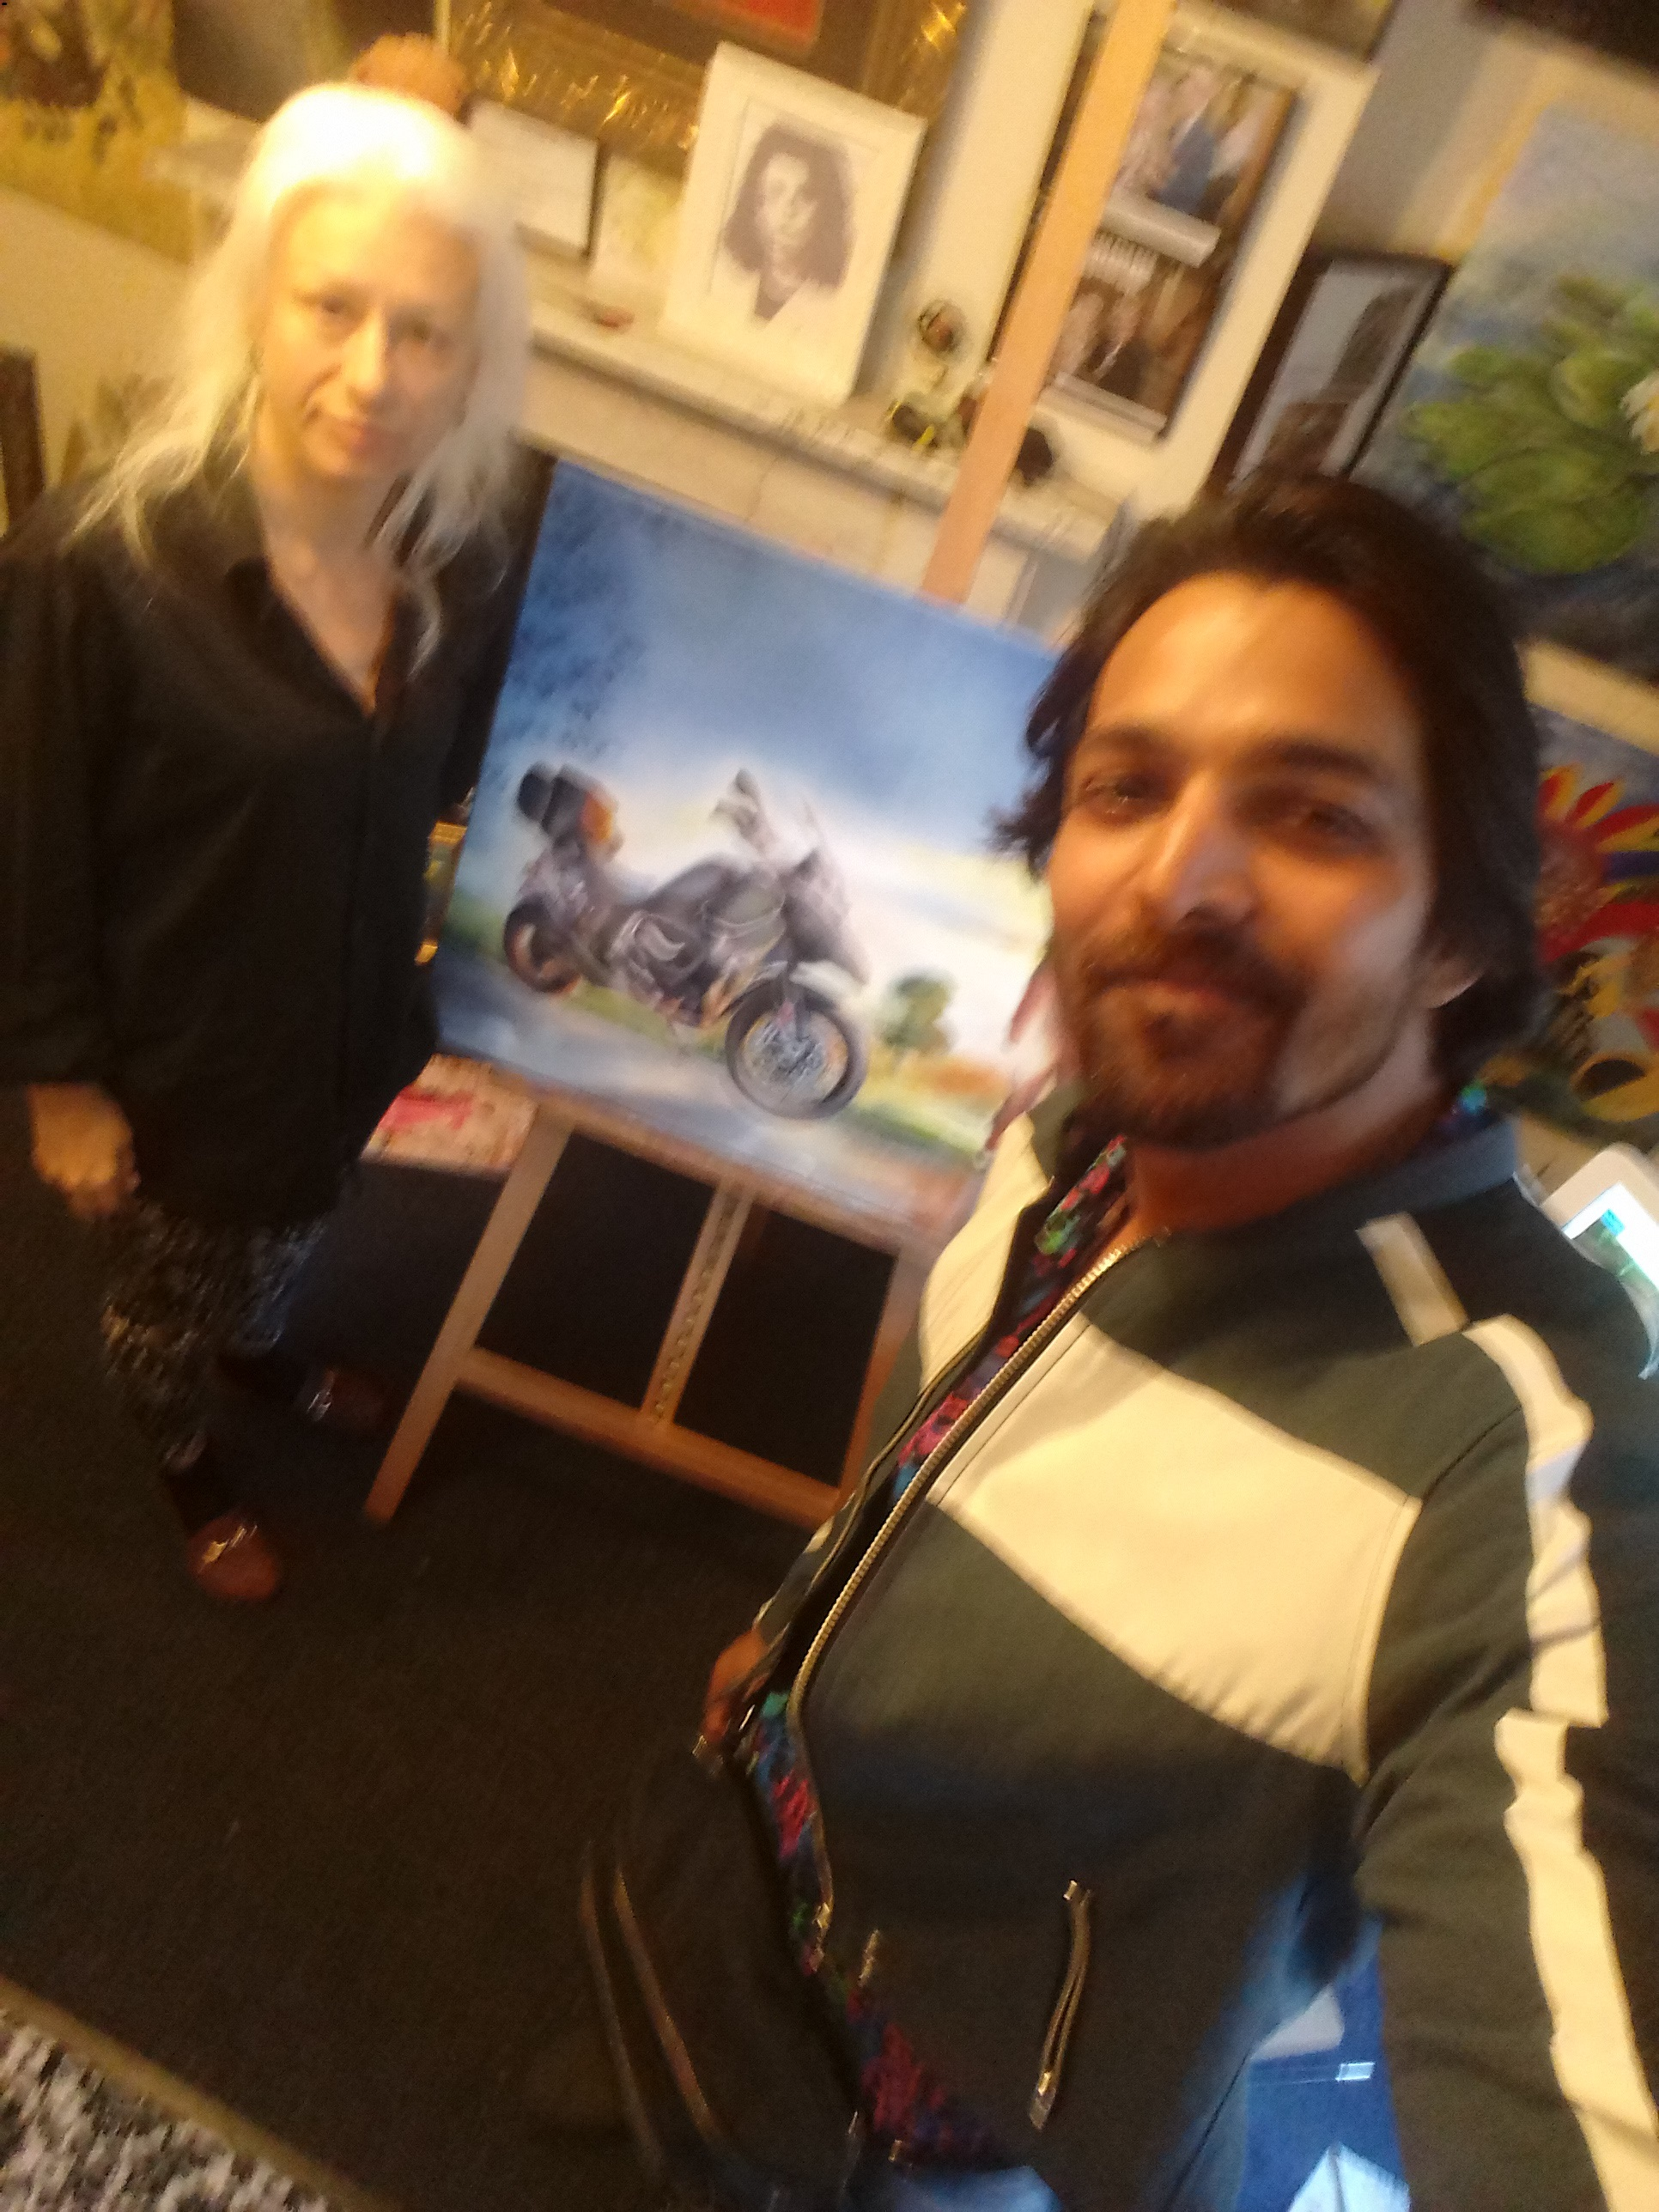 Harshavardhan Rane Motorbike-jurita-2019-oil on canvas - 60 x 80cm (11)